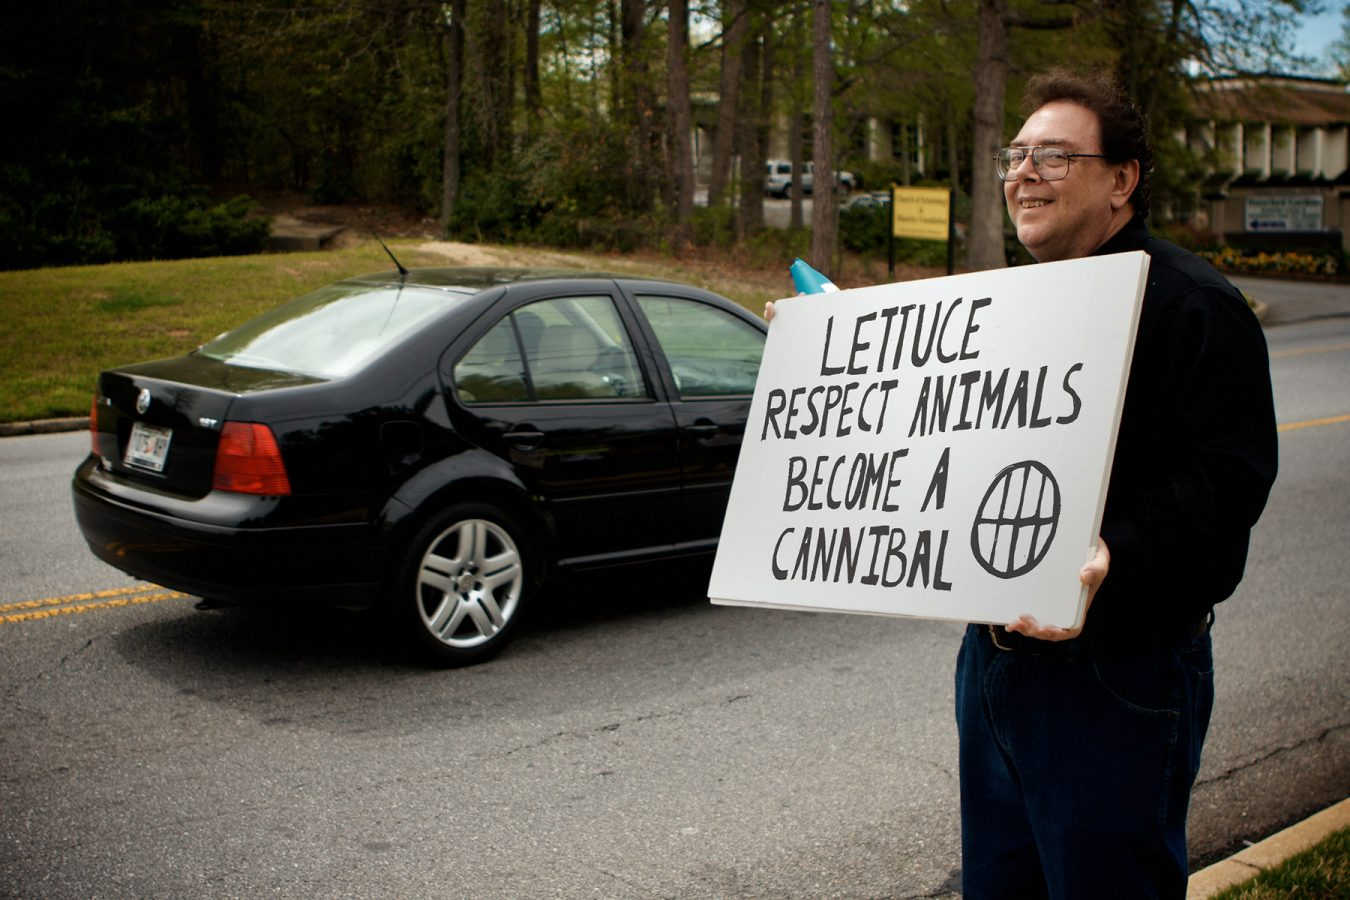 Lettuce Respect Animals, Become a Cannibal